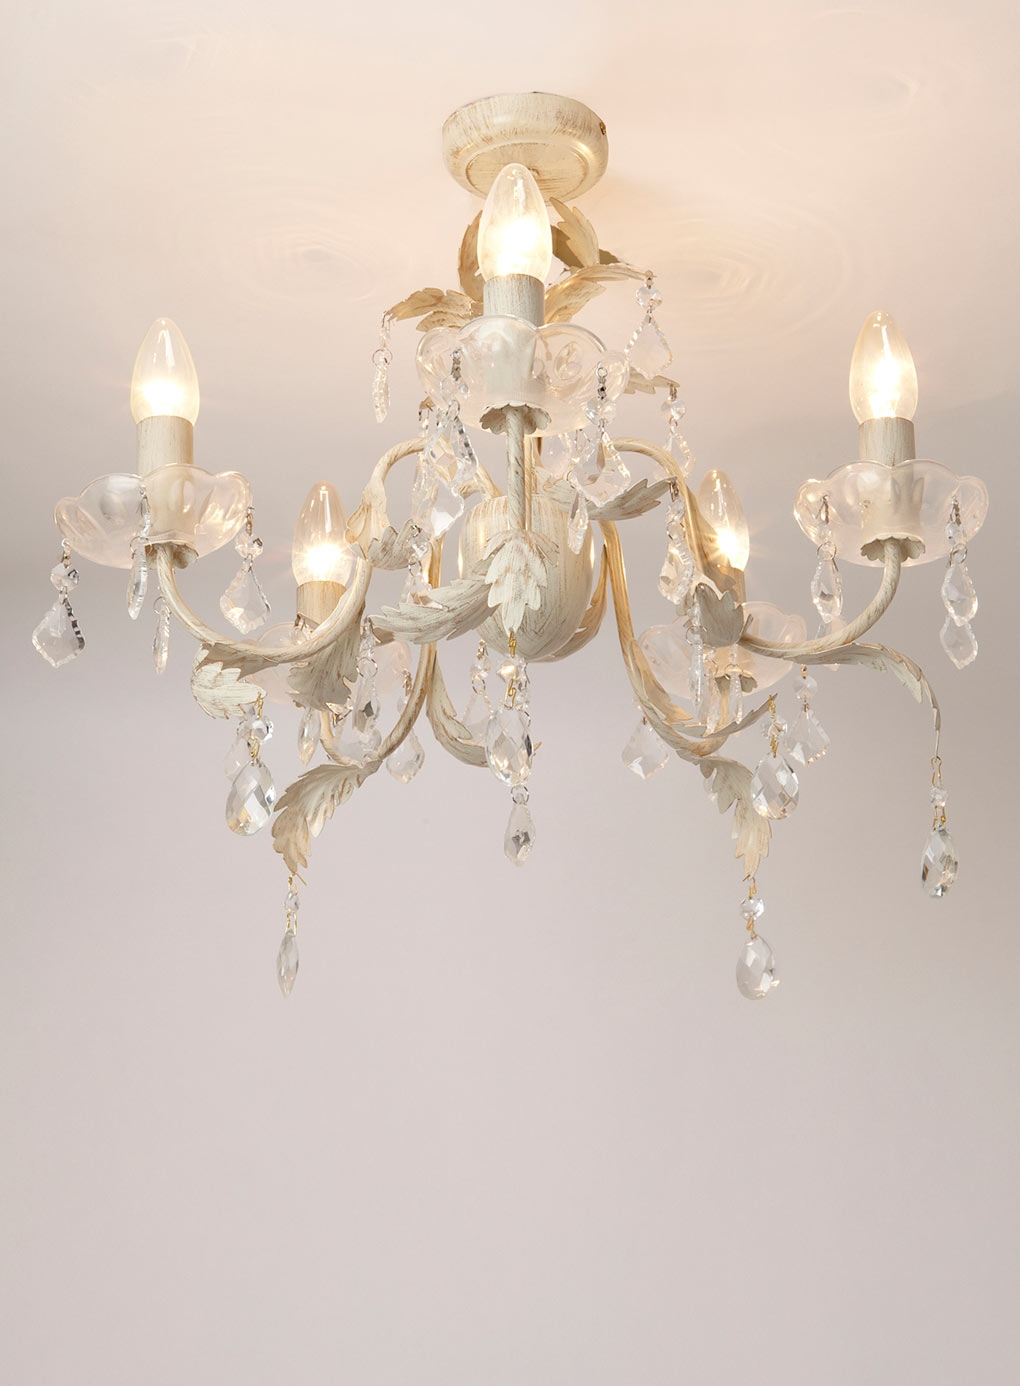 12 Best Collection Of Flush Fitting Chandeliers